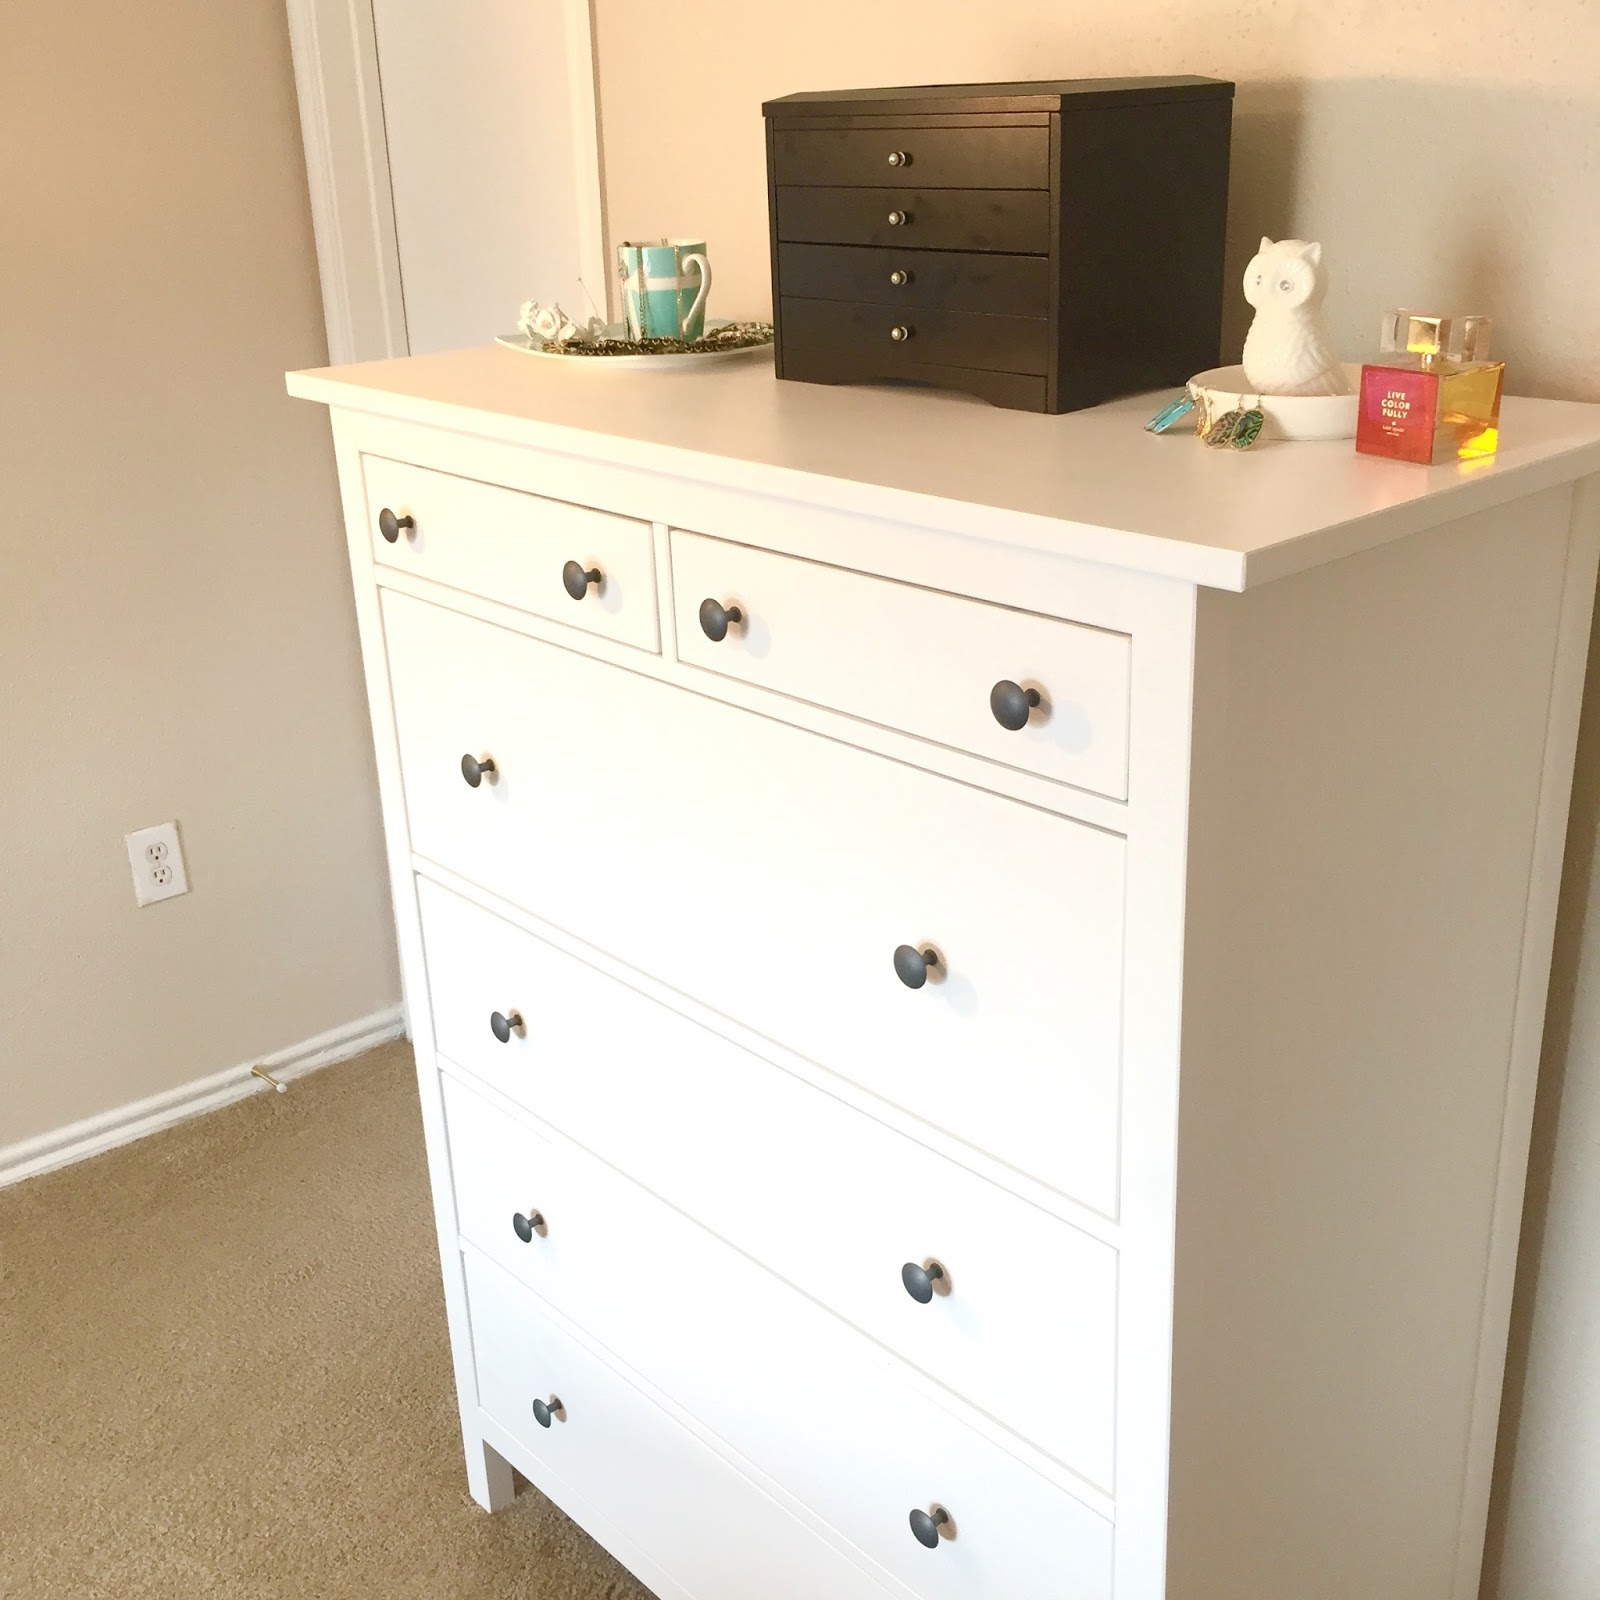 Ikea Hemnes Frisiertisch Mit Spiegel Weiß ~ Lavender Lady's Look book Ikea Hemnes 6 Drawer Chest Review